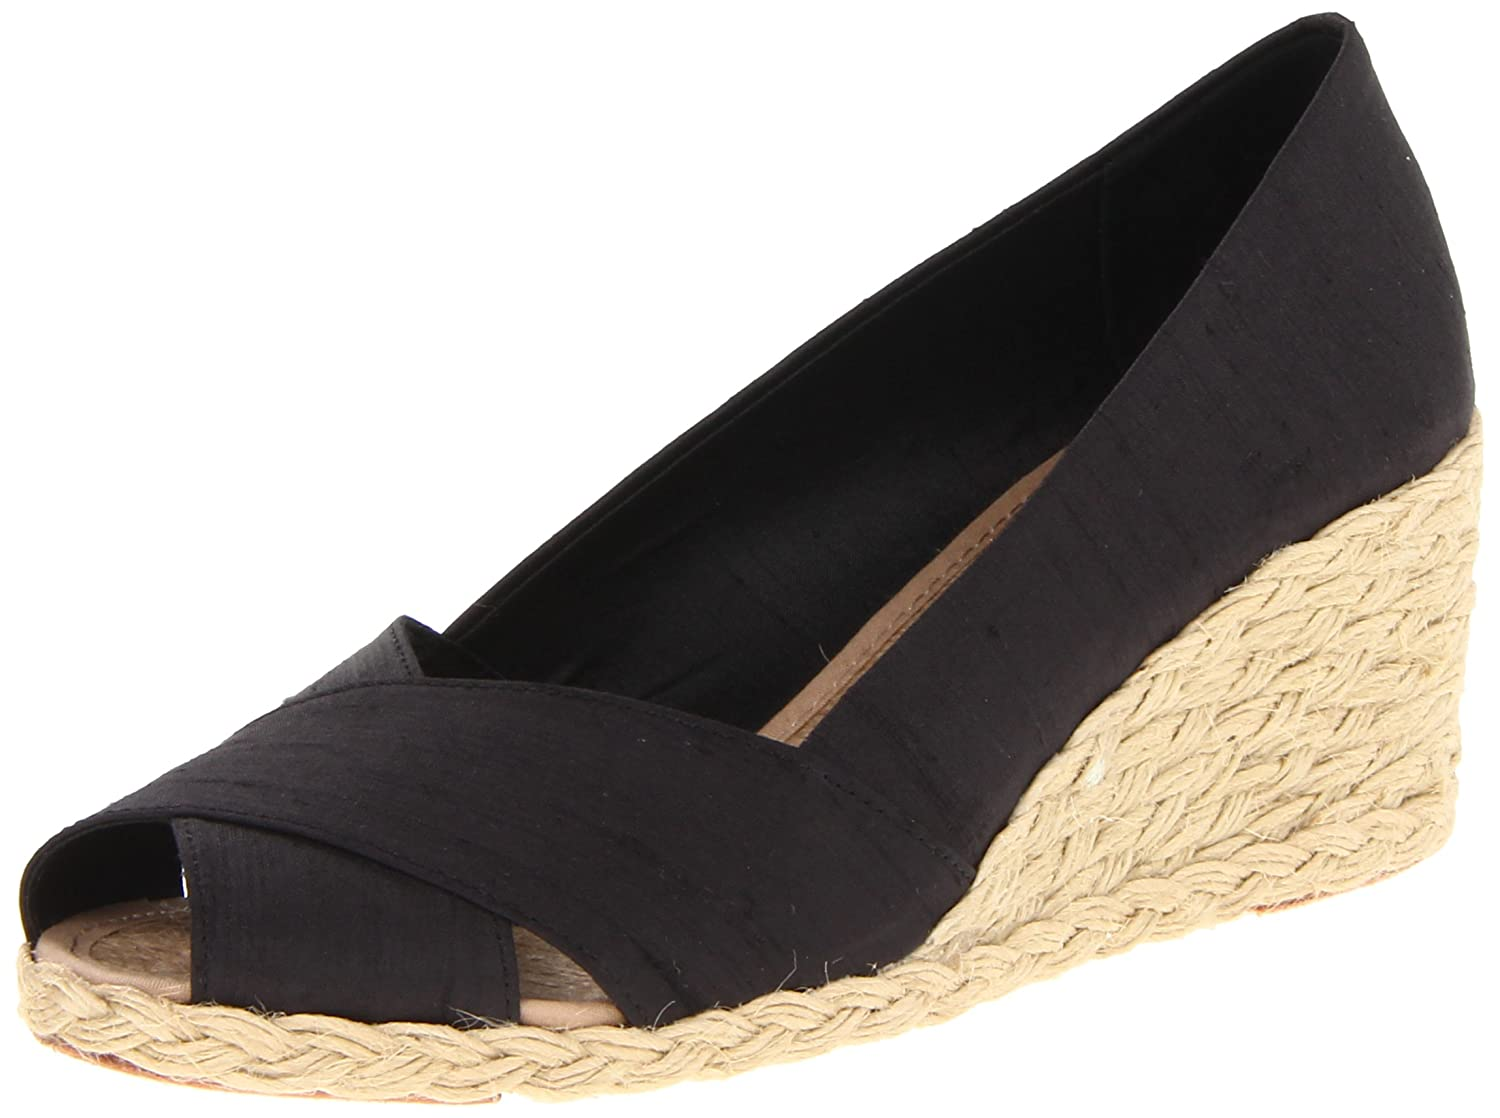 Espadrilles feminine - a peep of fashion or a relic of the past